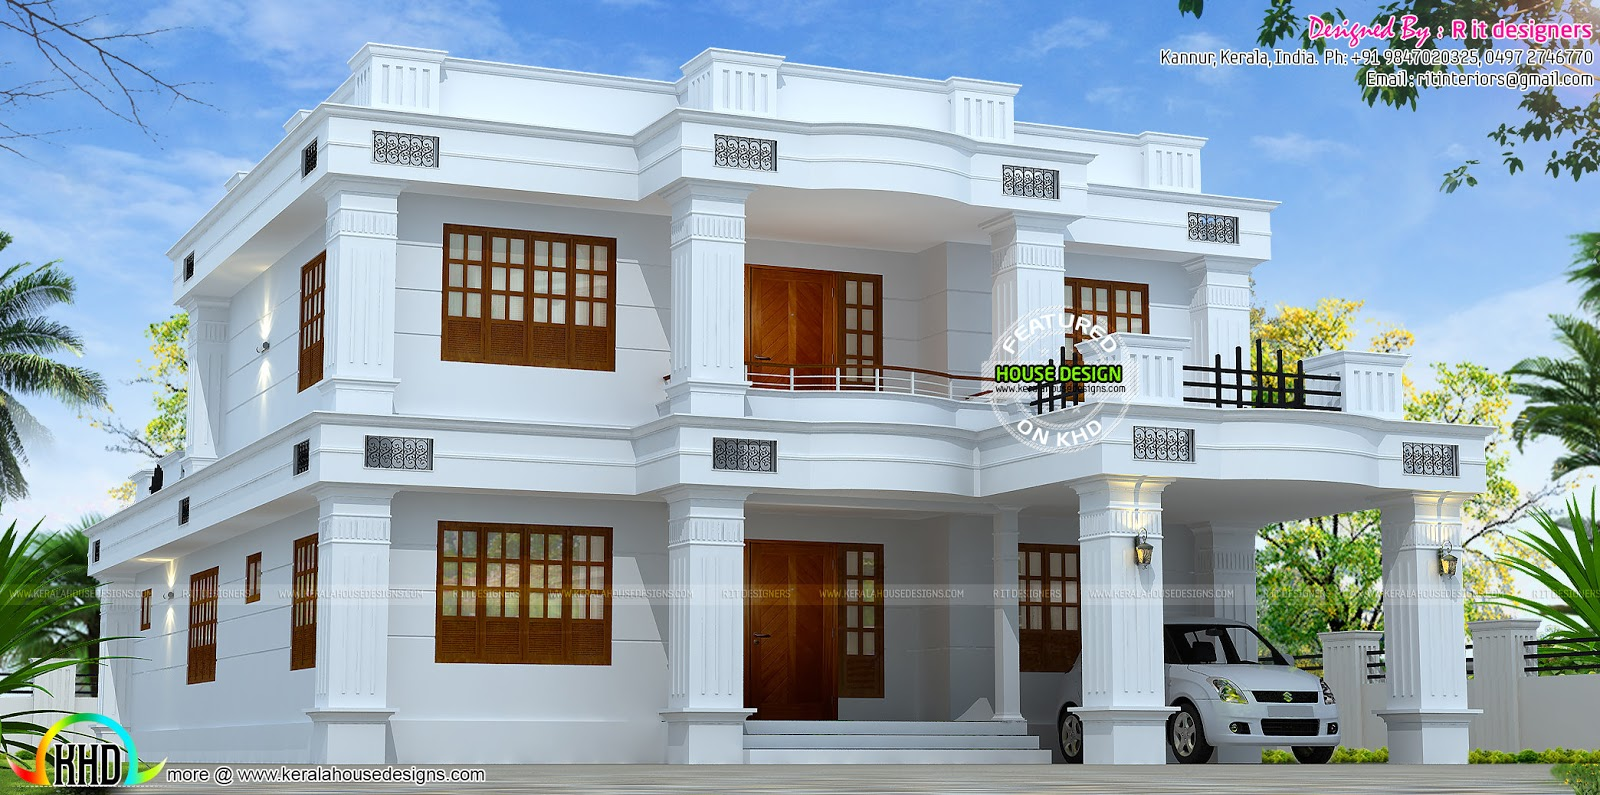 February 2016 Kerala Home Design And Floor Plans: home design